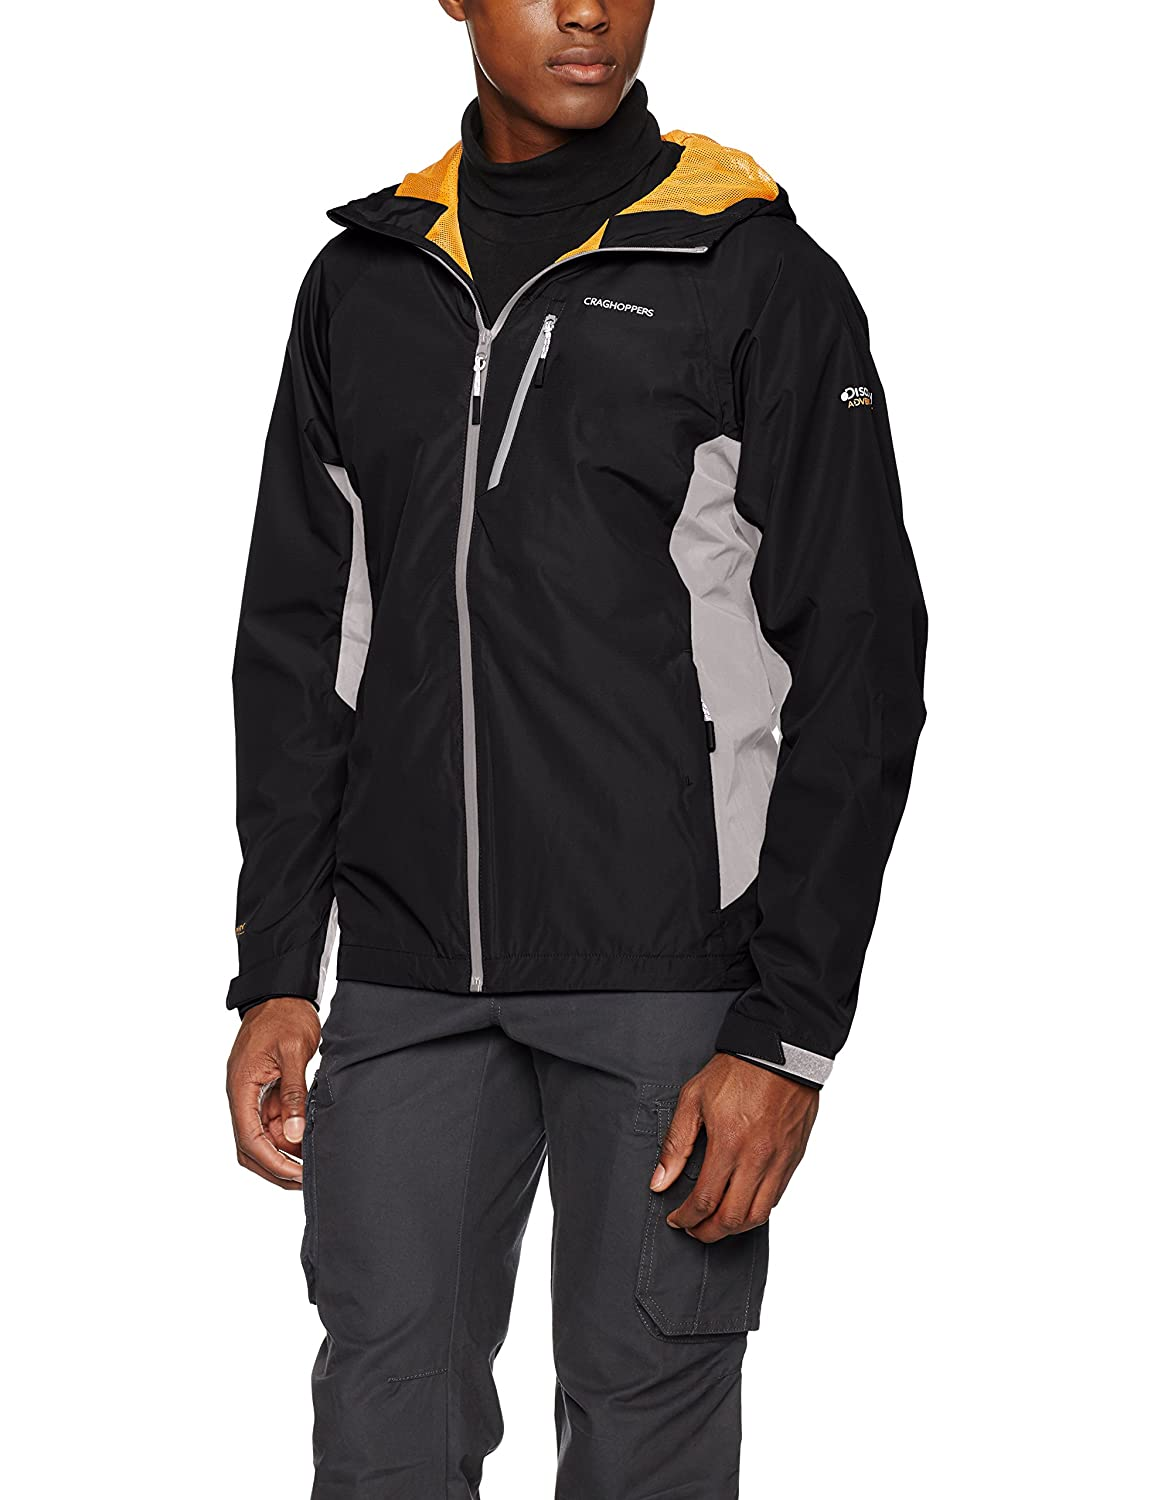 35c880a36b4b8 Craghoppers Men's Discovery Adventures Waterproof Jacket: Amazon.co.uk:  Sports & Outdoors